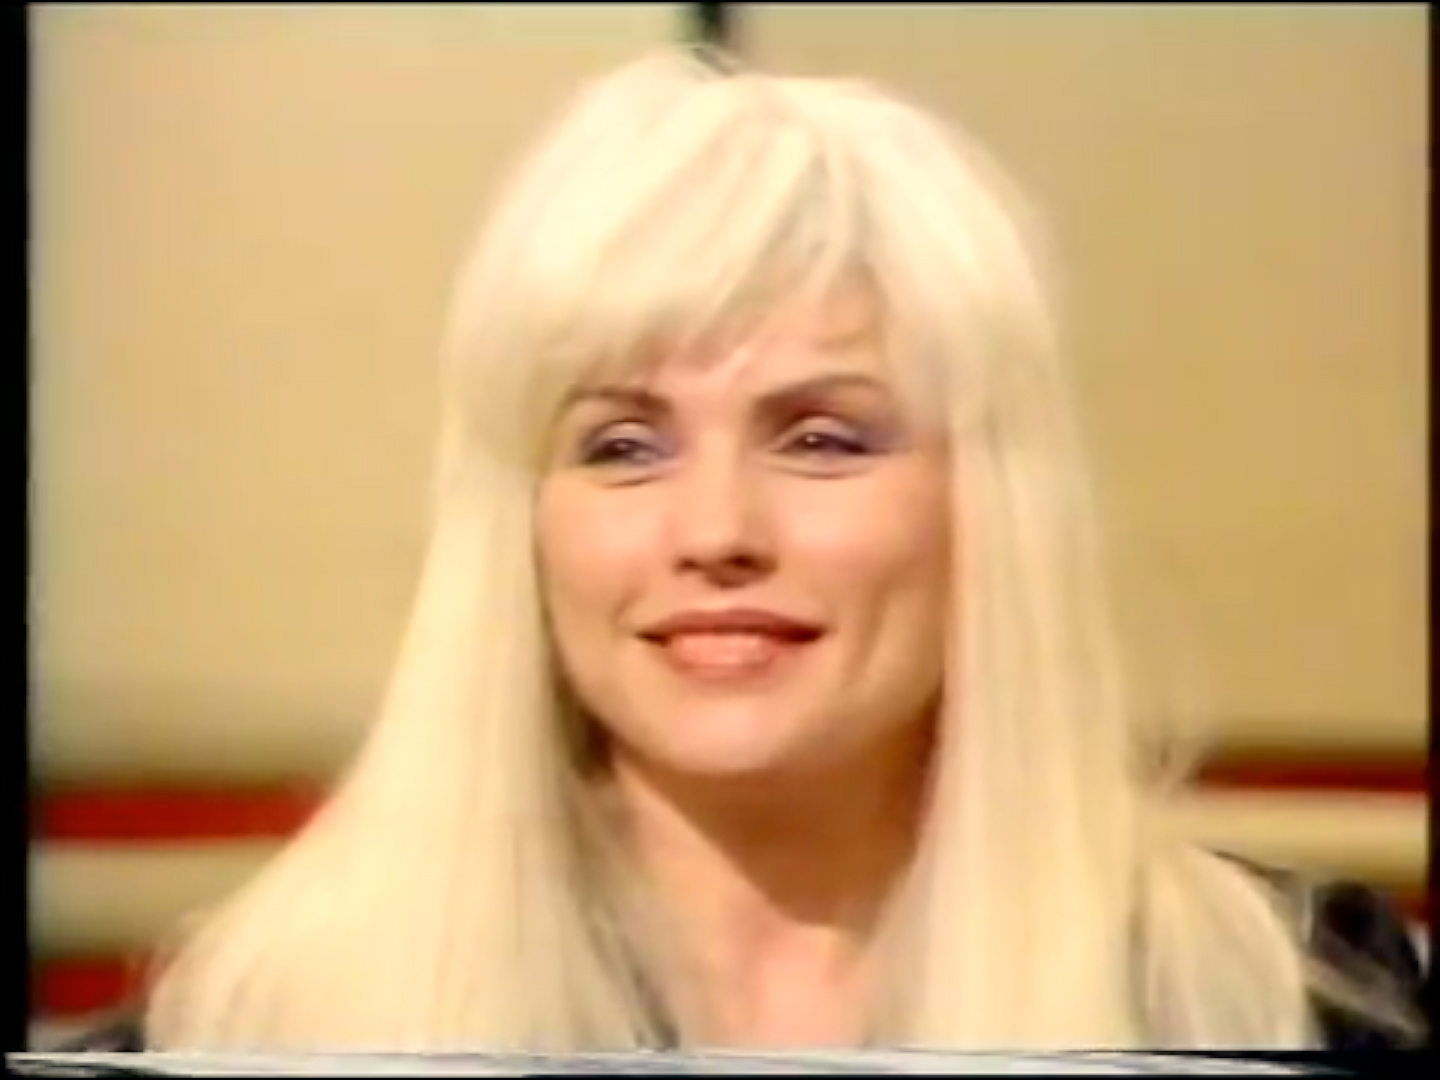 DEBORAH HARRY DOES NOT LIKE INTERVIEWS